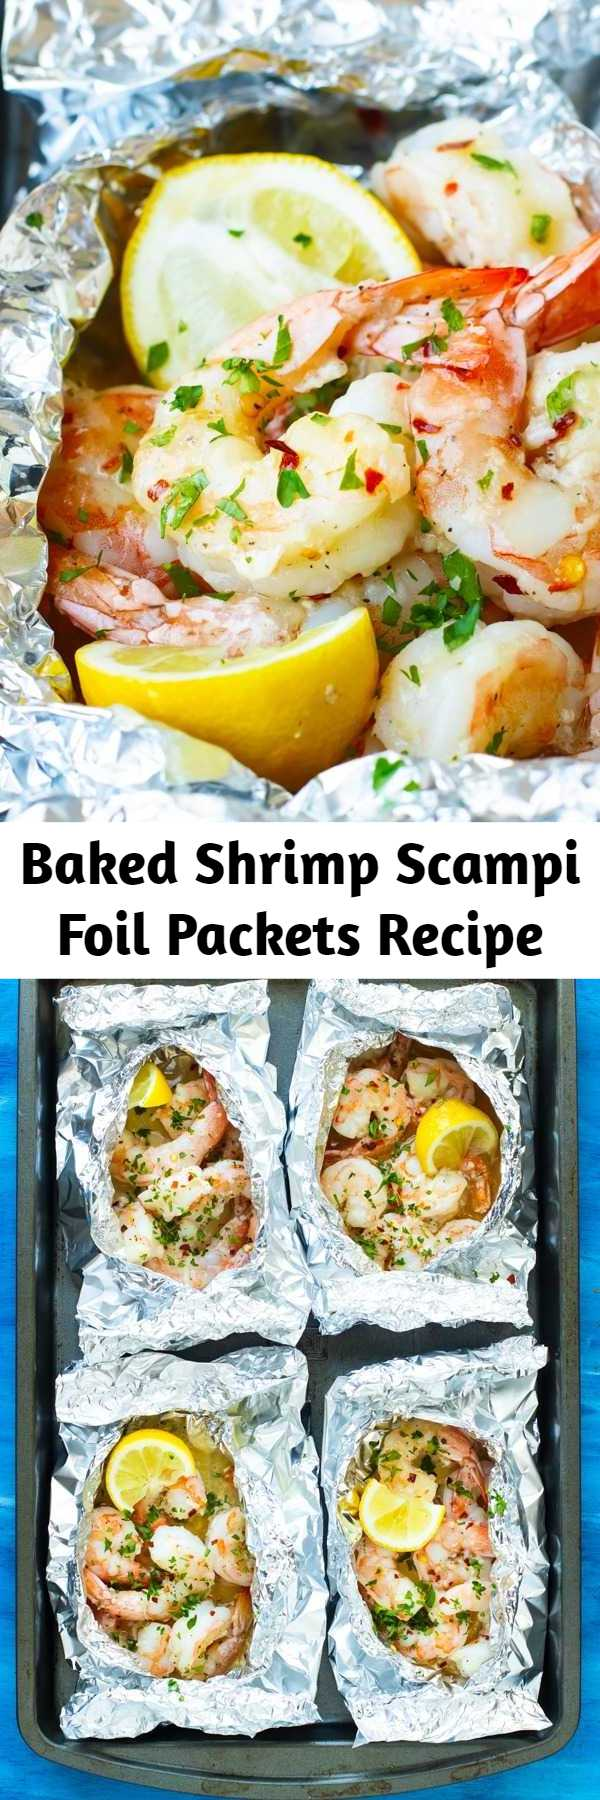 Baked Shrimp Scampi Foil Packets Recipe - Baked Shrimp Scampi is tossed in a delicious garlic and butter white wine sauce, made in convenient foil packets, and is healthy, low-carb, gluten-free, low-carb, and can be made Paleo and Whole30.  This easy weeknight dinner recipe comes together in under 20 minutes, too! #lowcarb #keto #shrimp #dinner